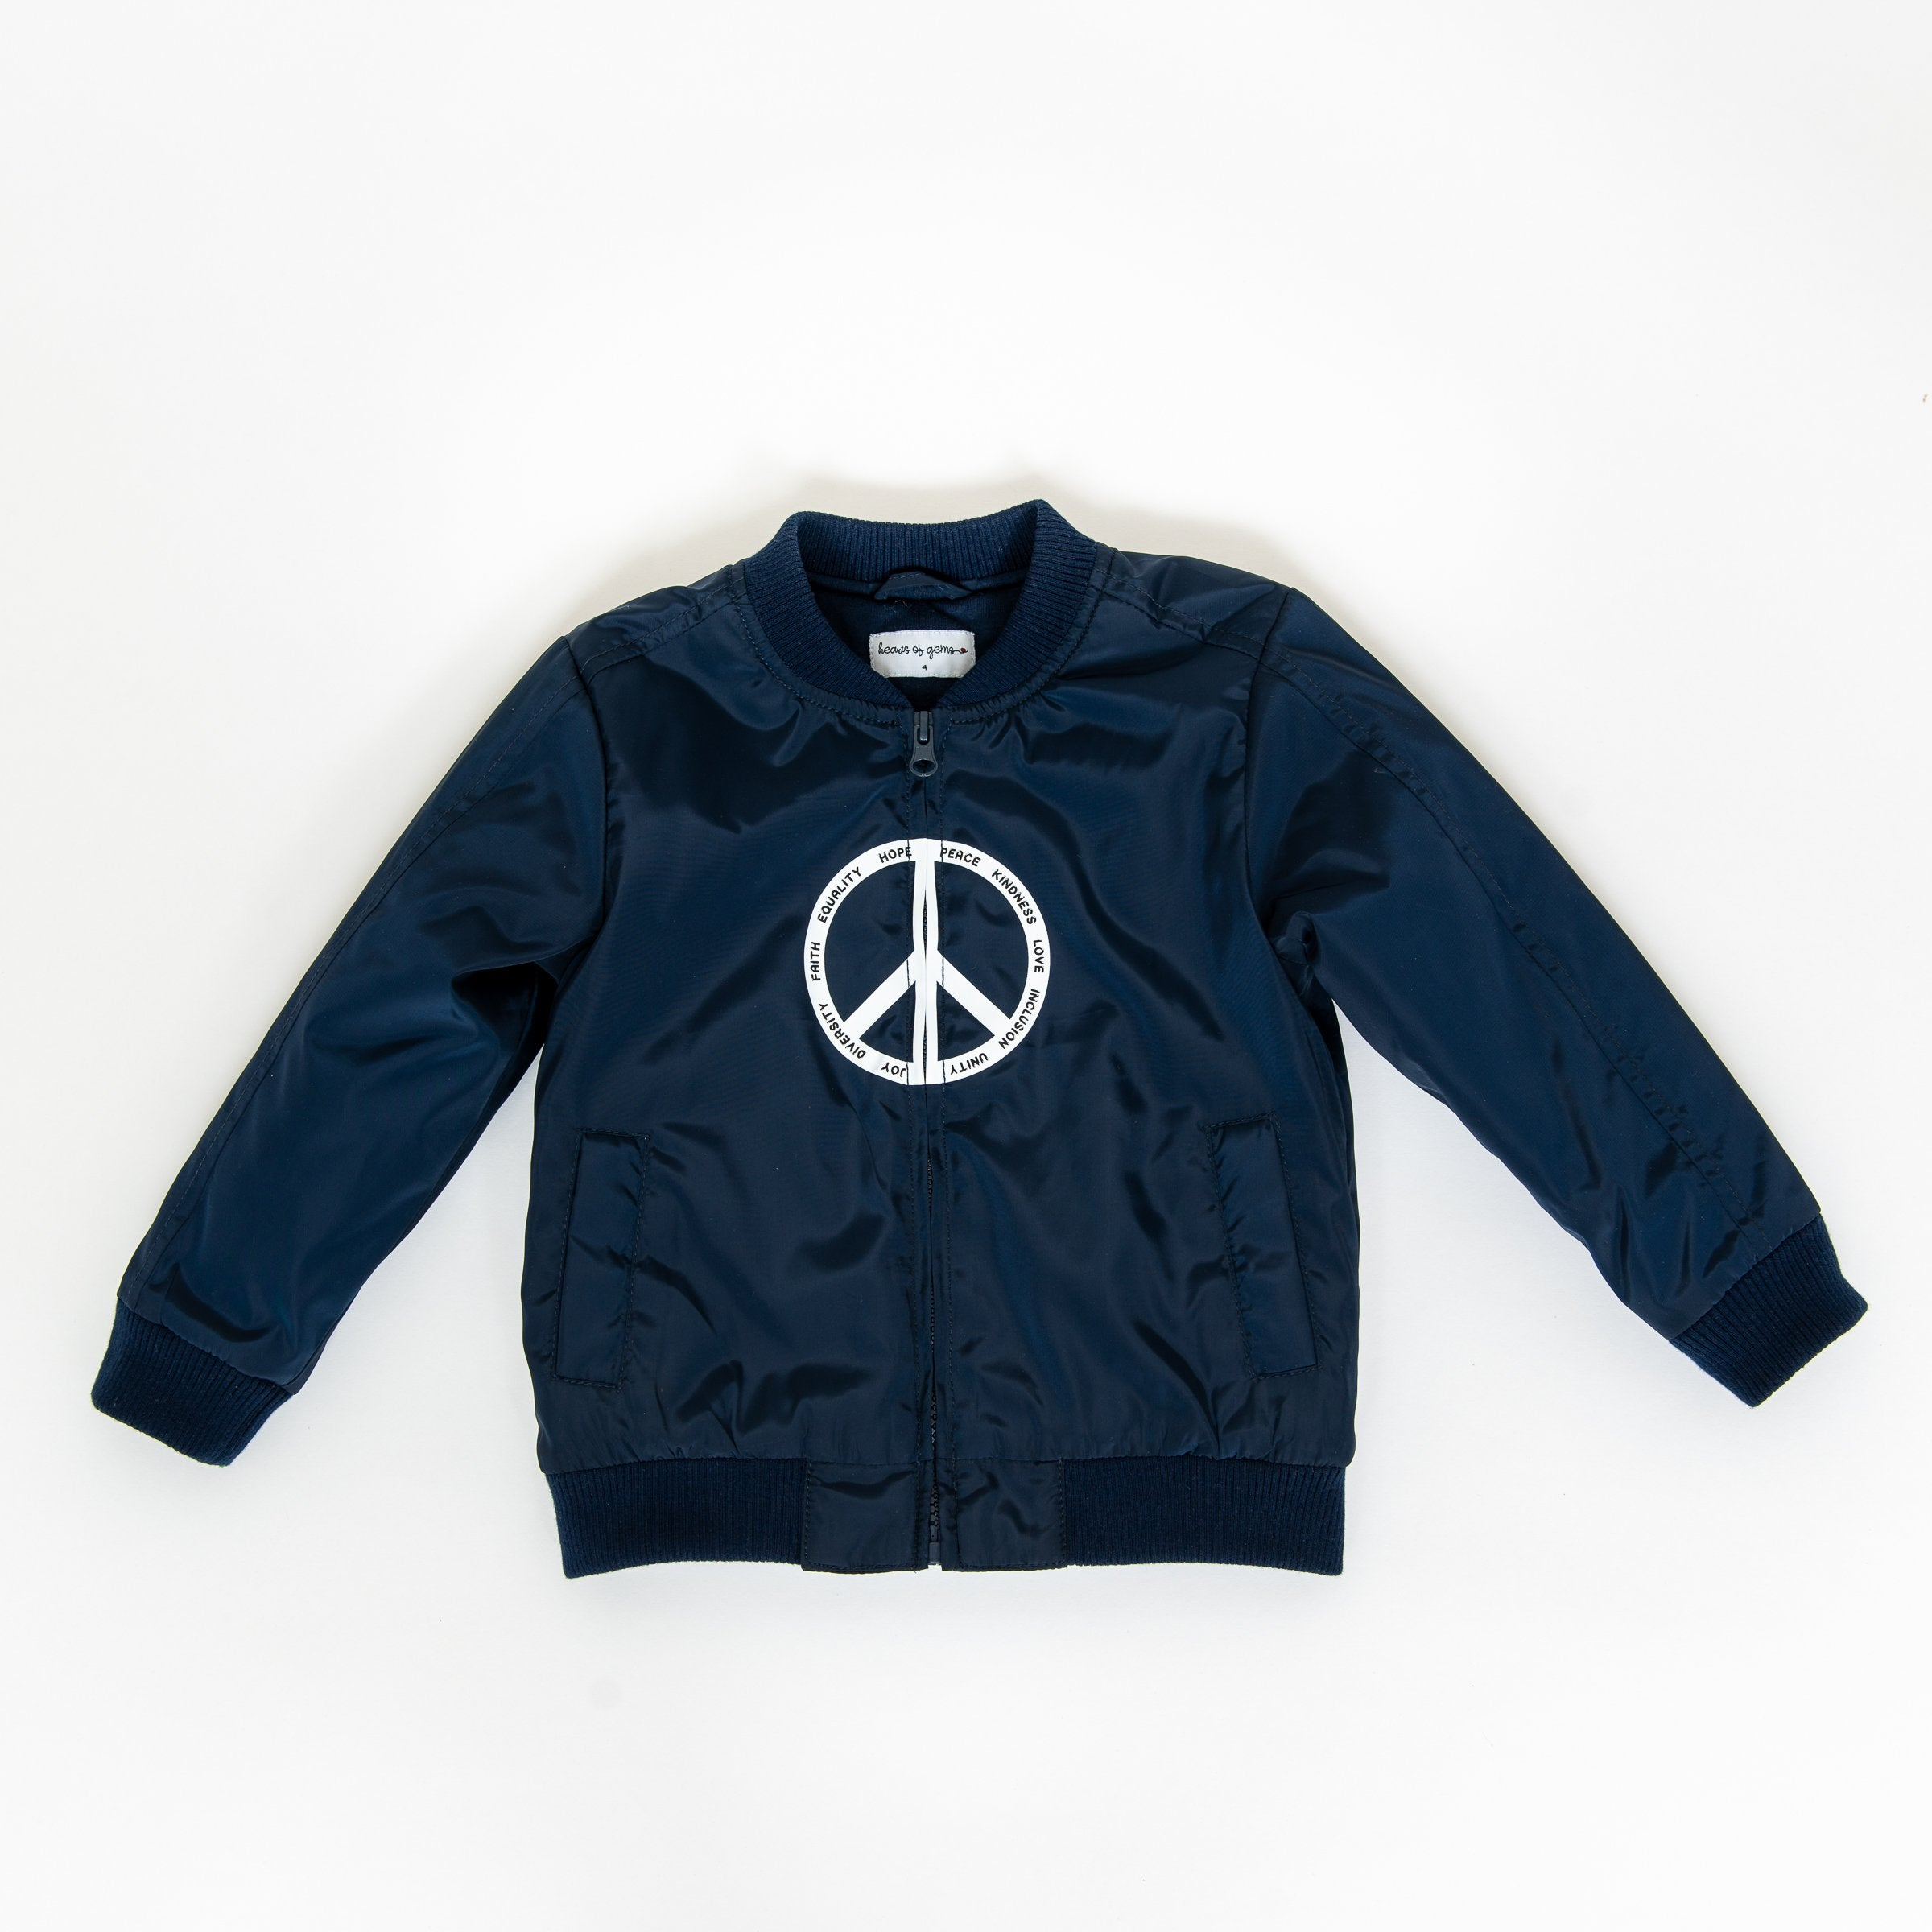 Elements of Peace Blue Bomber Jacket for Toddlers